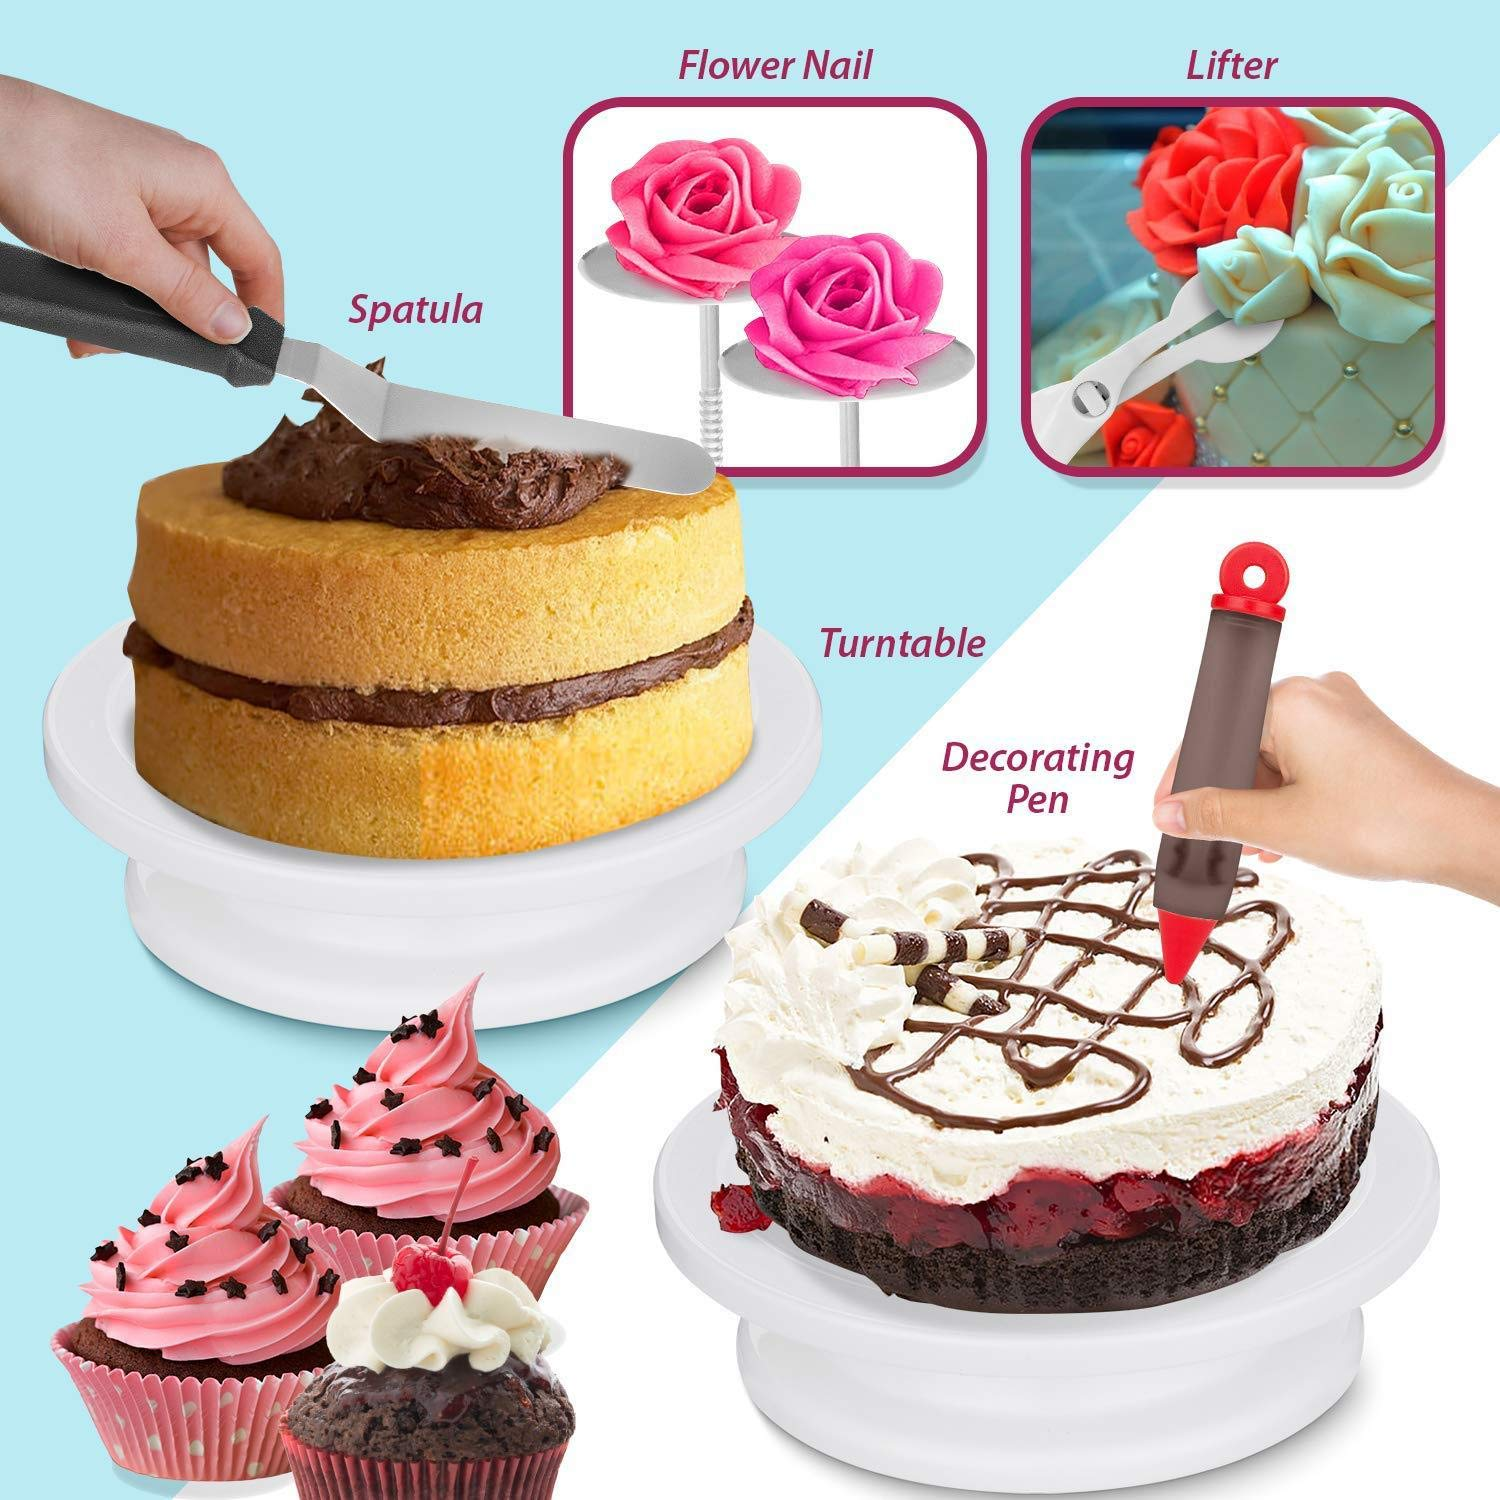 JHKJ 164 -Piece Cake Turntable Set Baking Tool DIY Tool Cake Decorating Kit Supplies by JHKJ (Image #5)